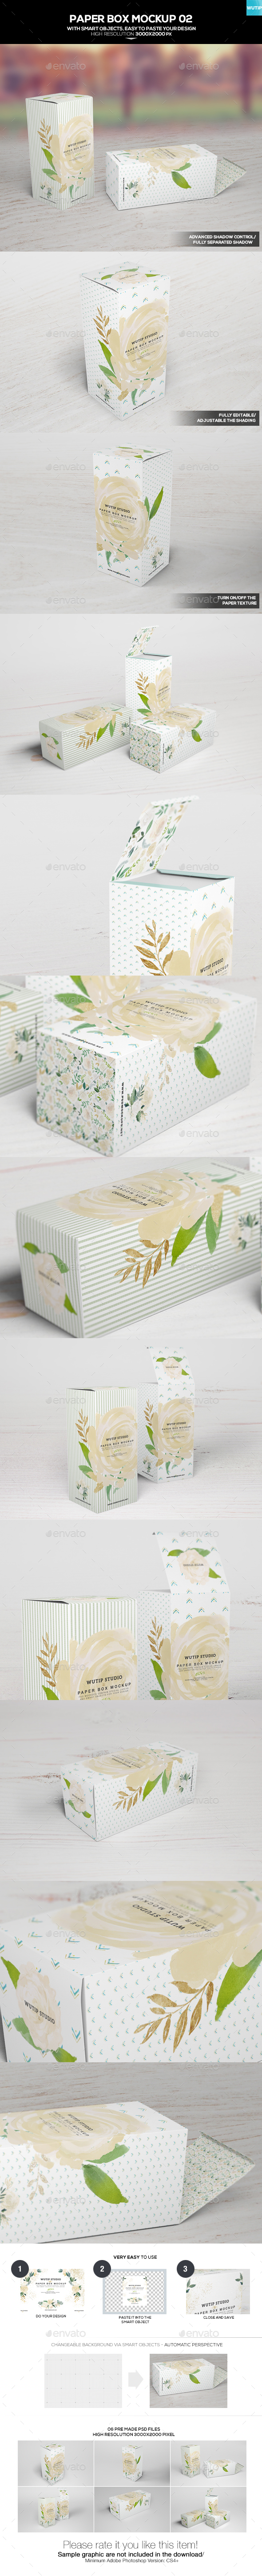 Paper Box Mockup 02 - Food and Drink Packaging